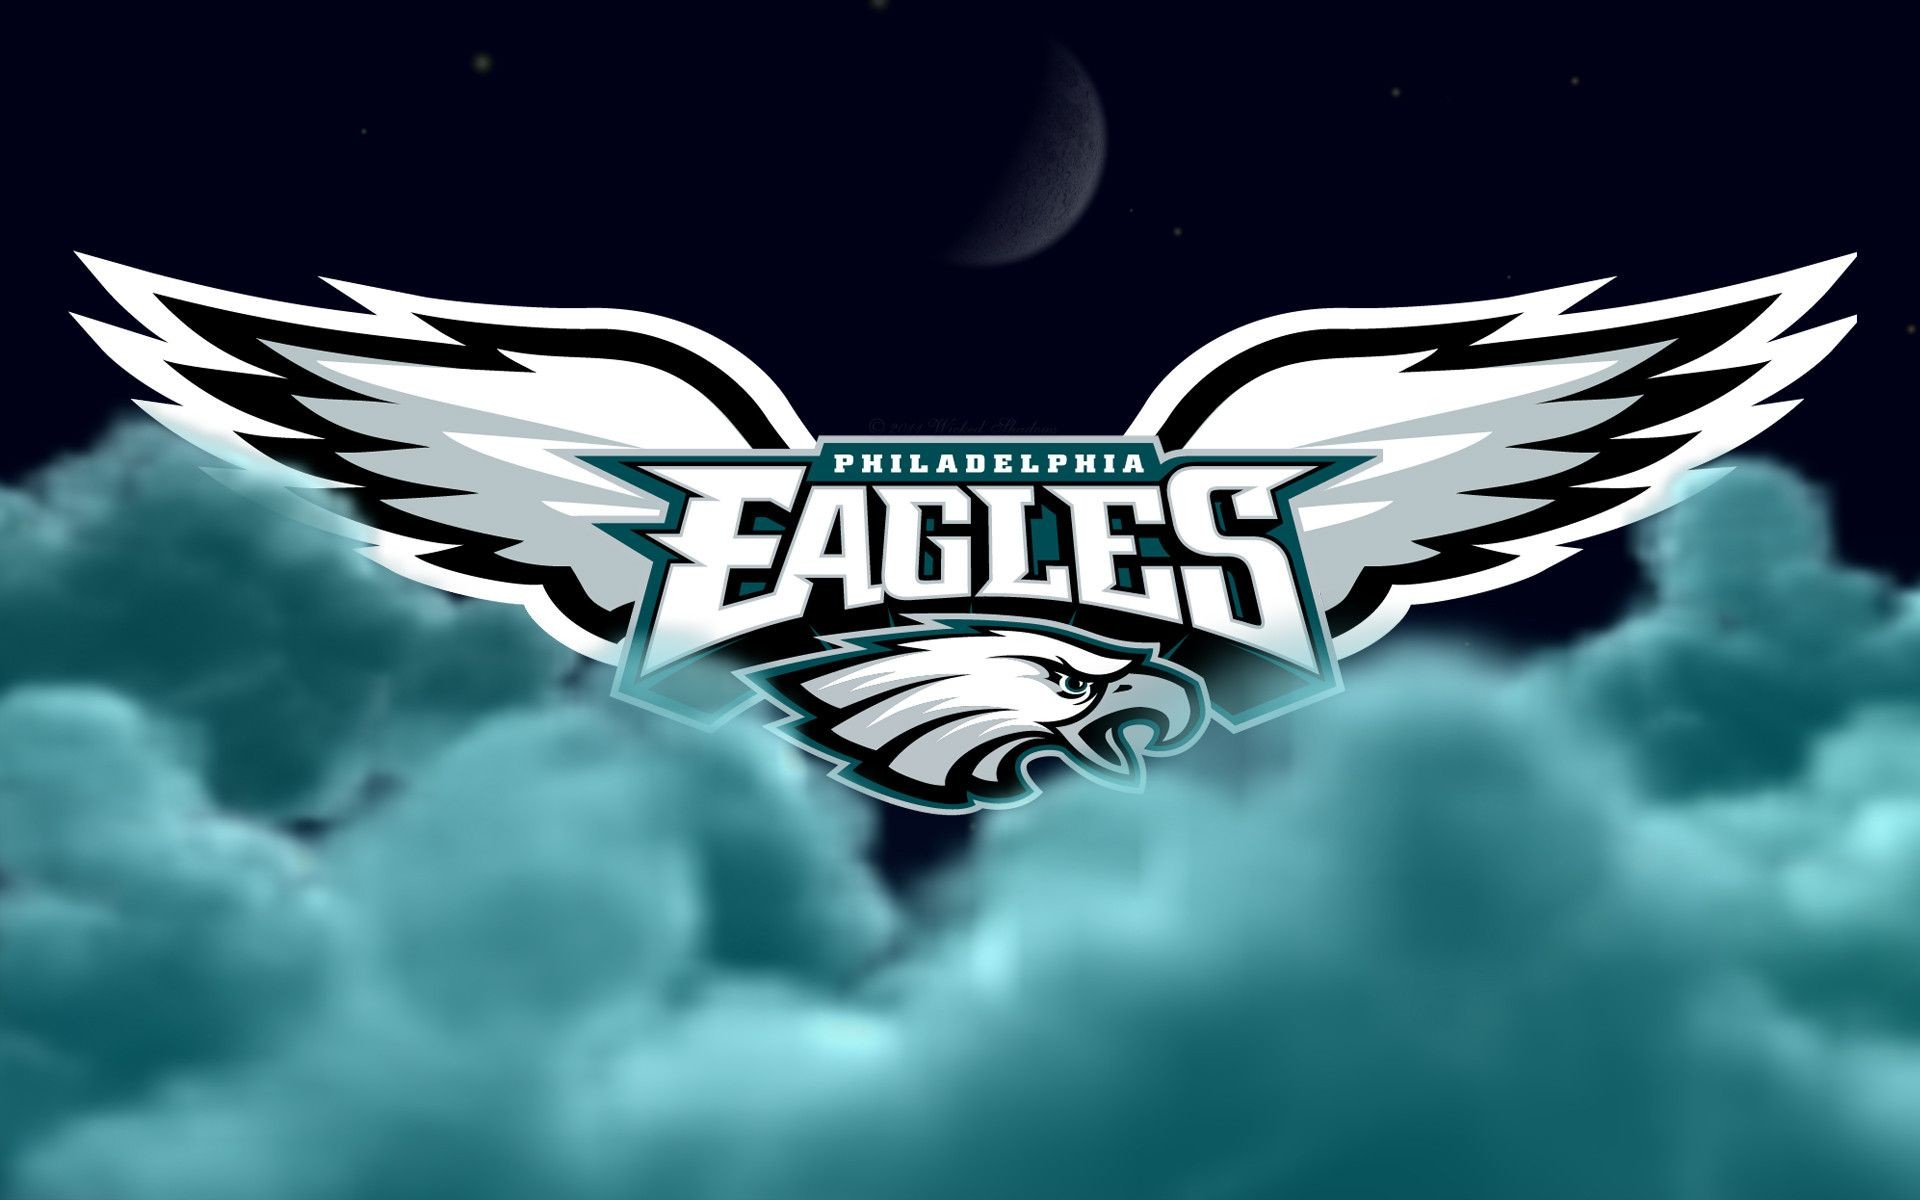 Philadelphia Eagles Wallpapers Wallpaper   HD Wallpapers   Pinterest    Philadelphia eagles wallpaper, Wallpaper and Wallpaper backgrounds